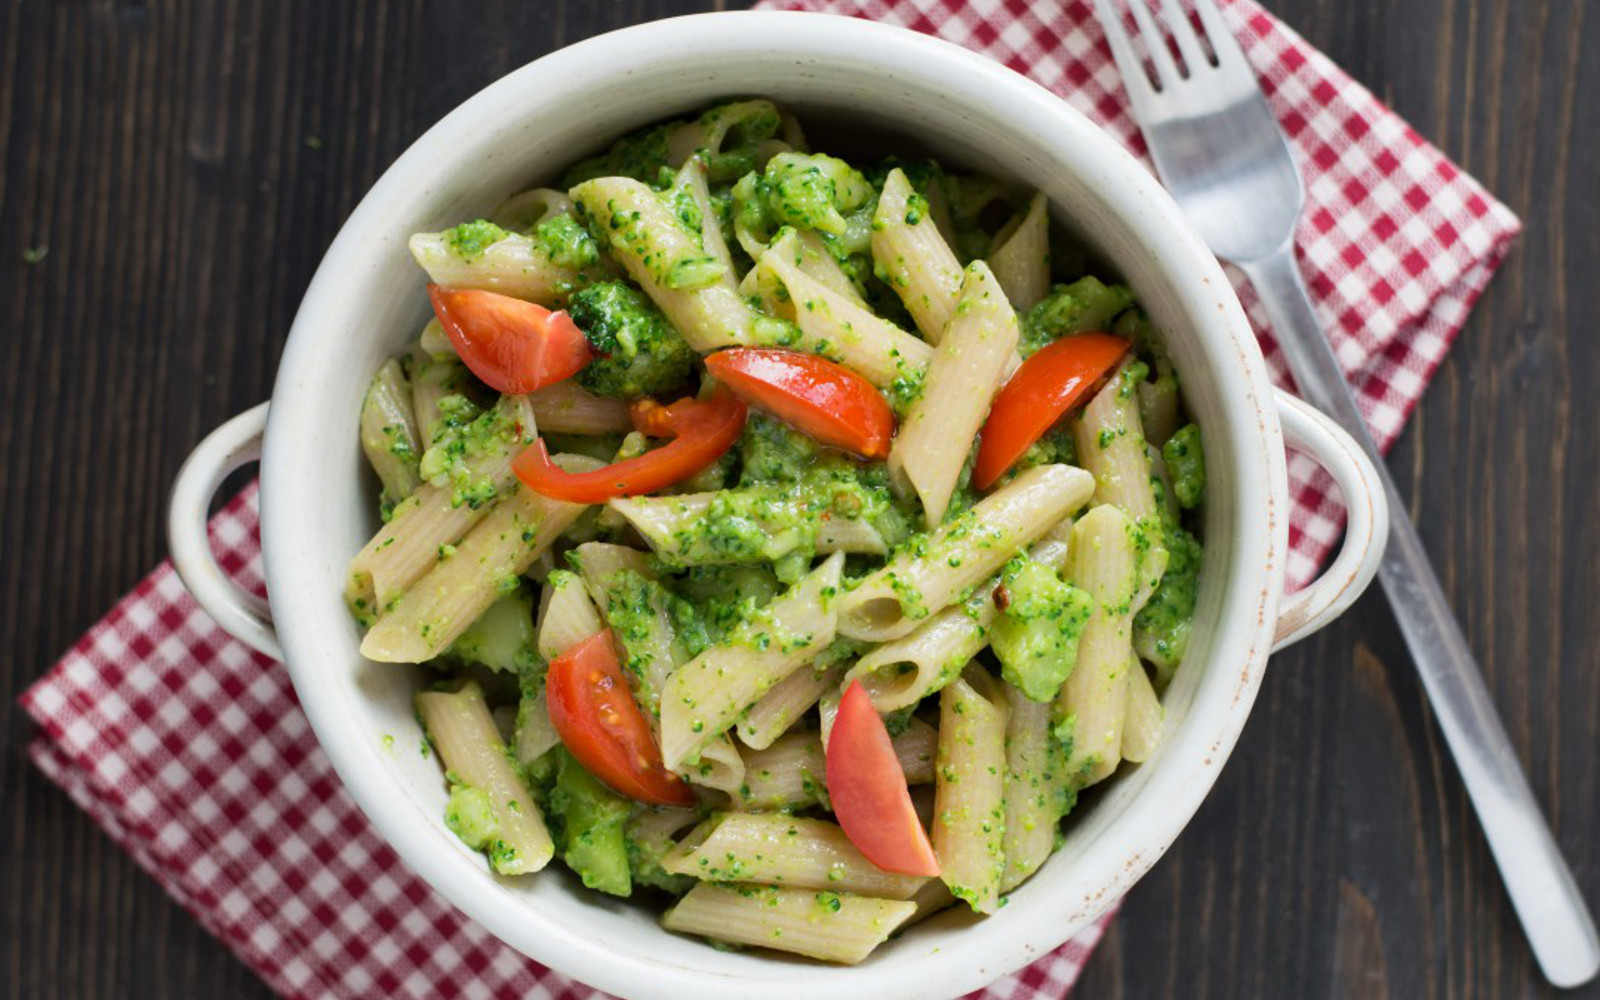 Penne with Broccoli, Chili, and Capers